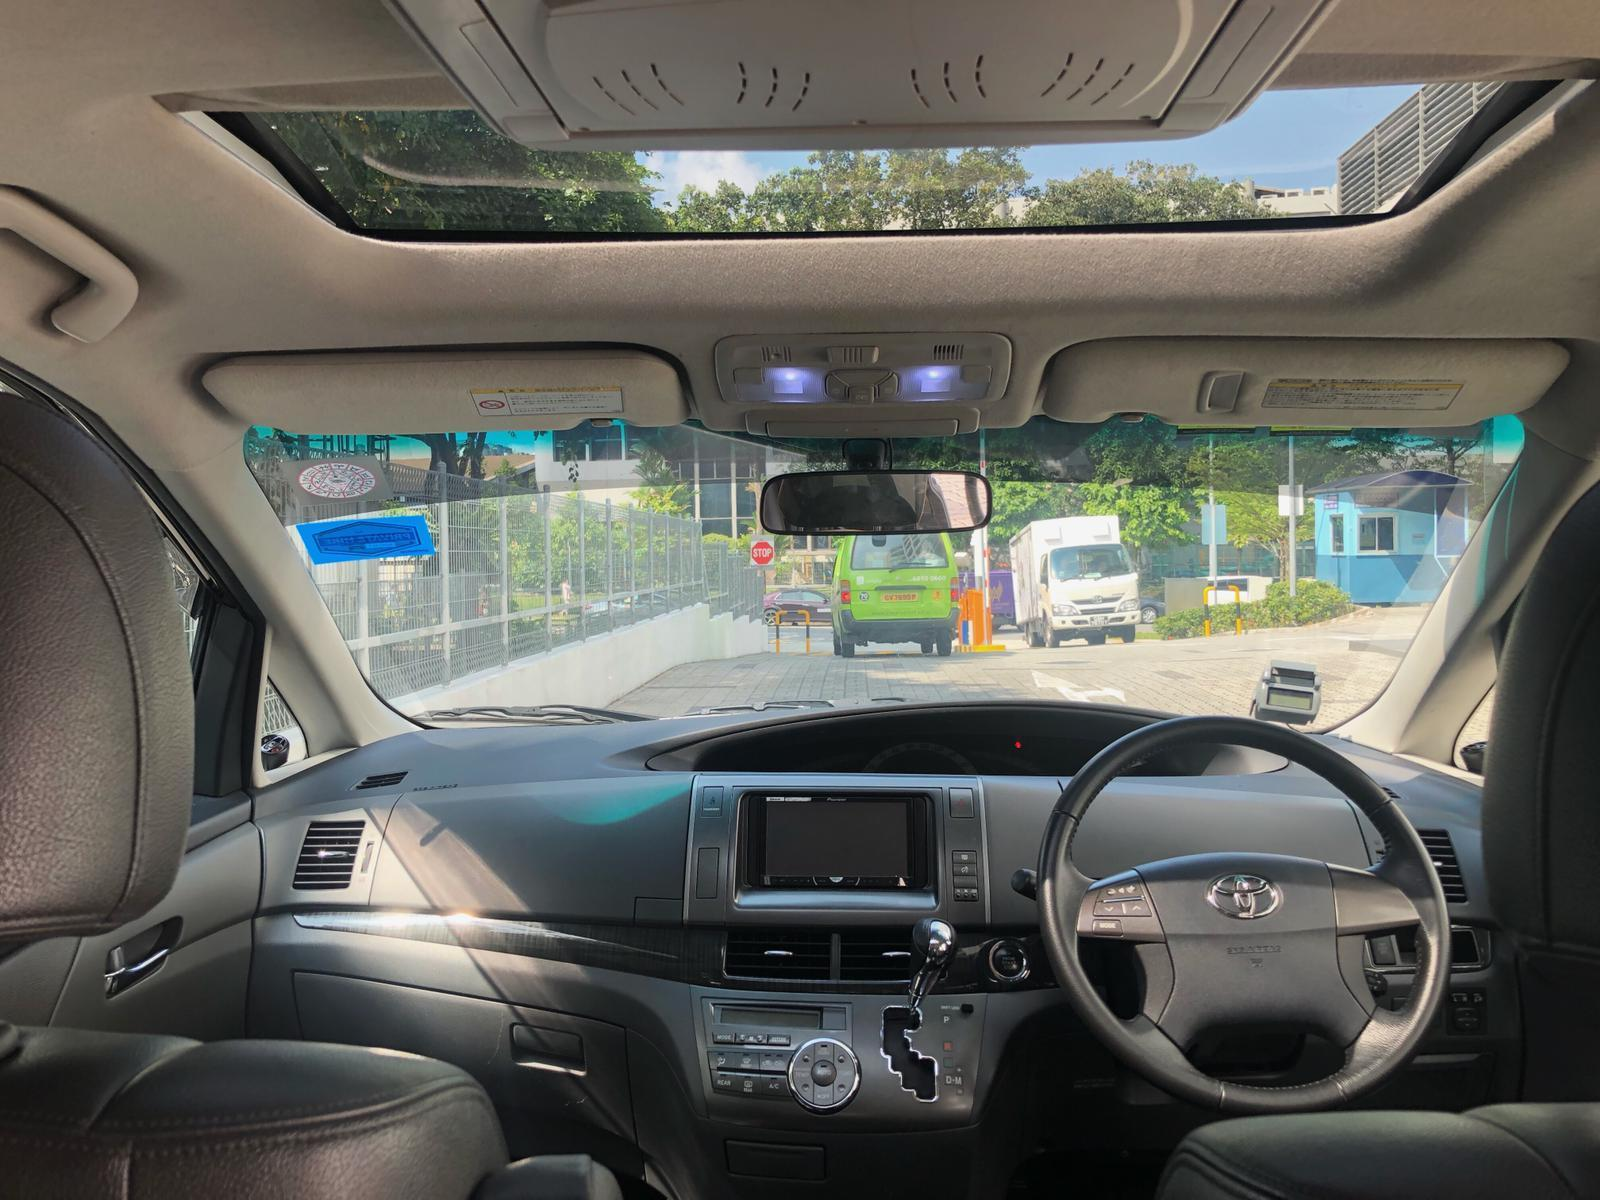 Toyota Estima CHEAPEST RENTAL for Grab GoJek or Personal use